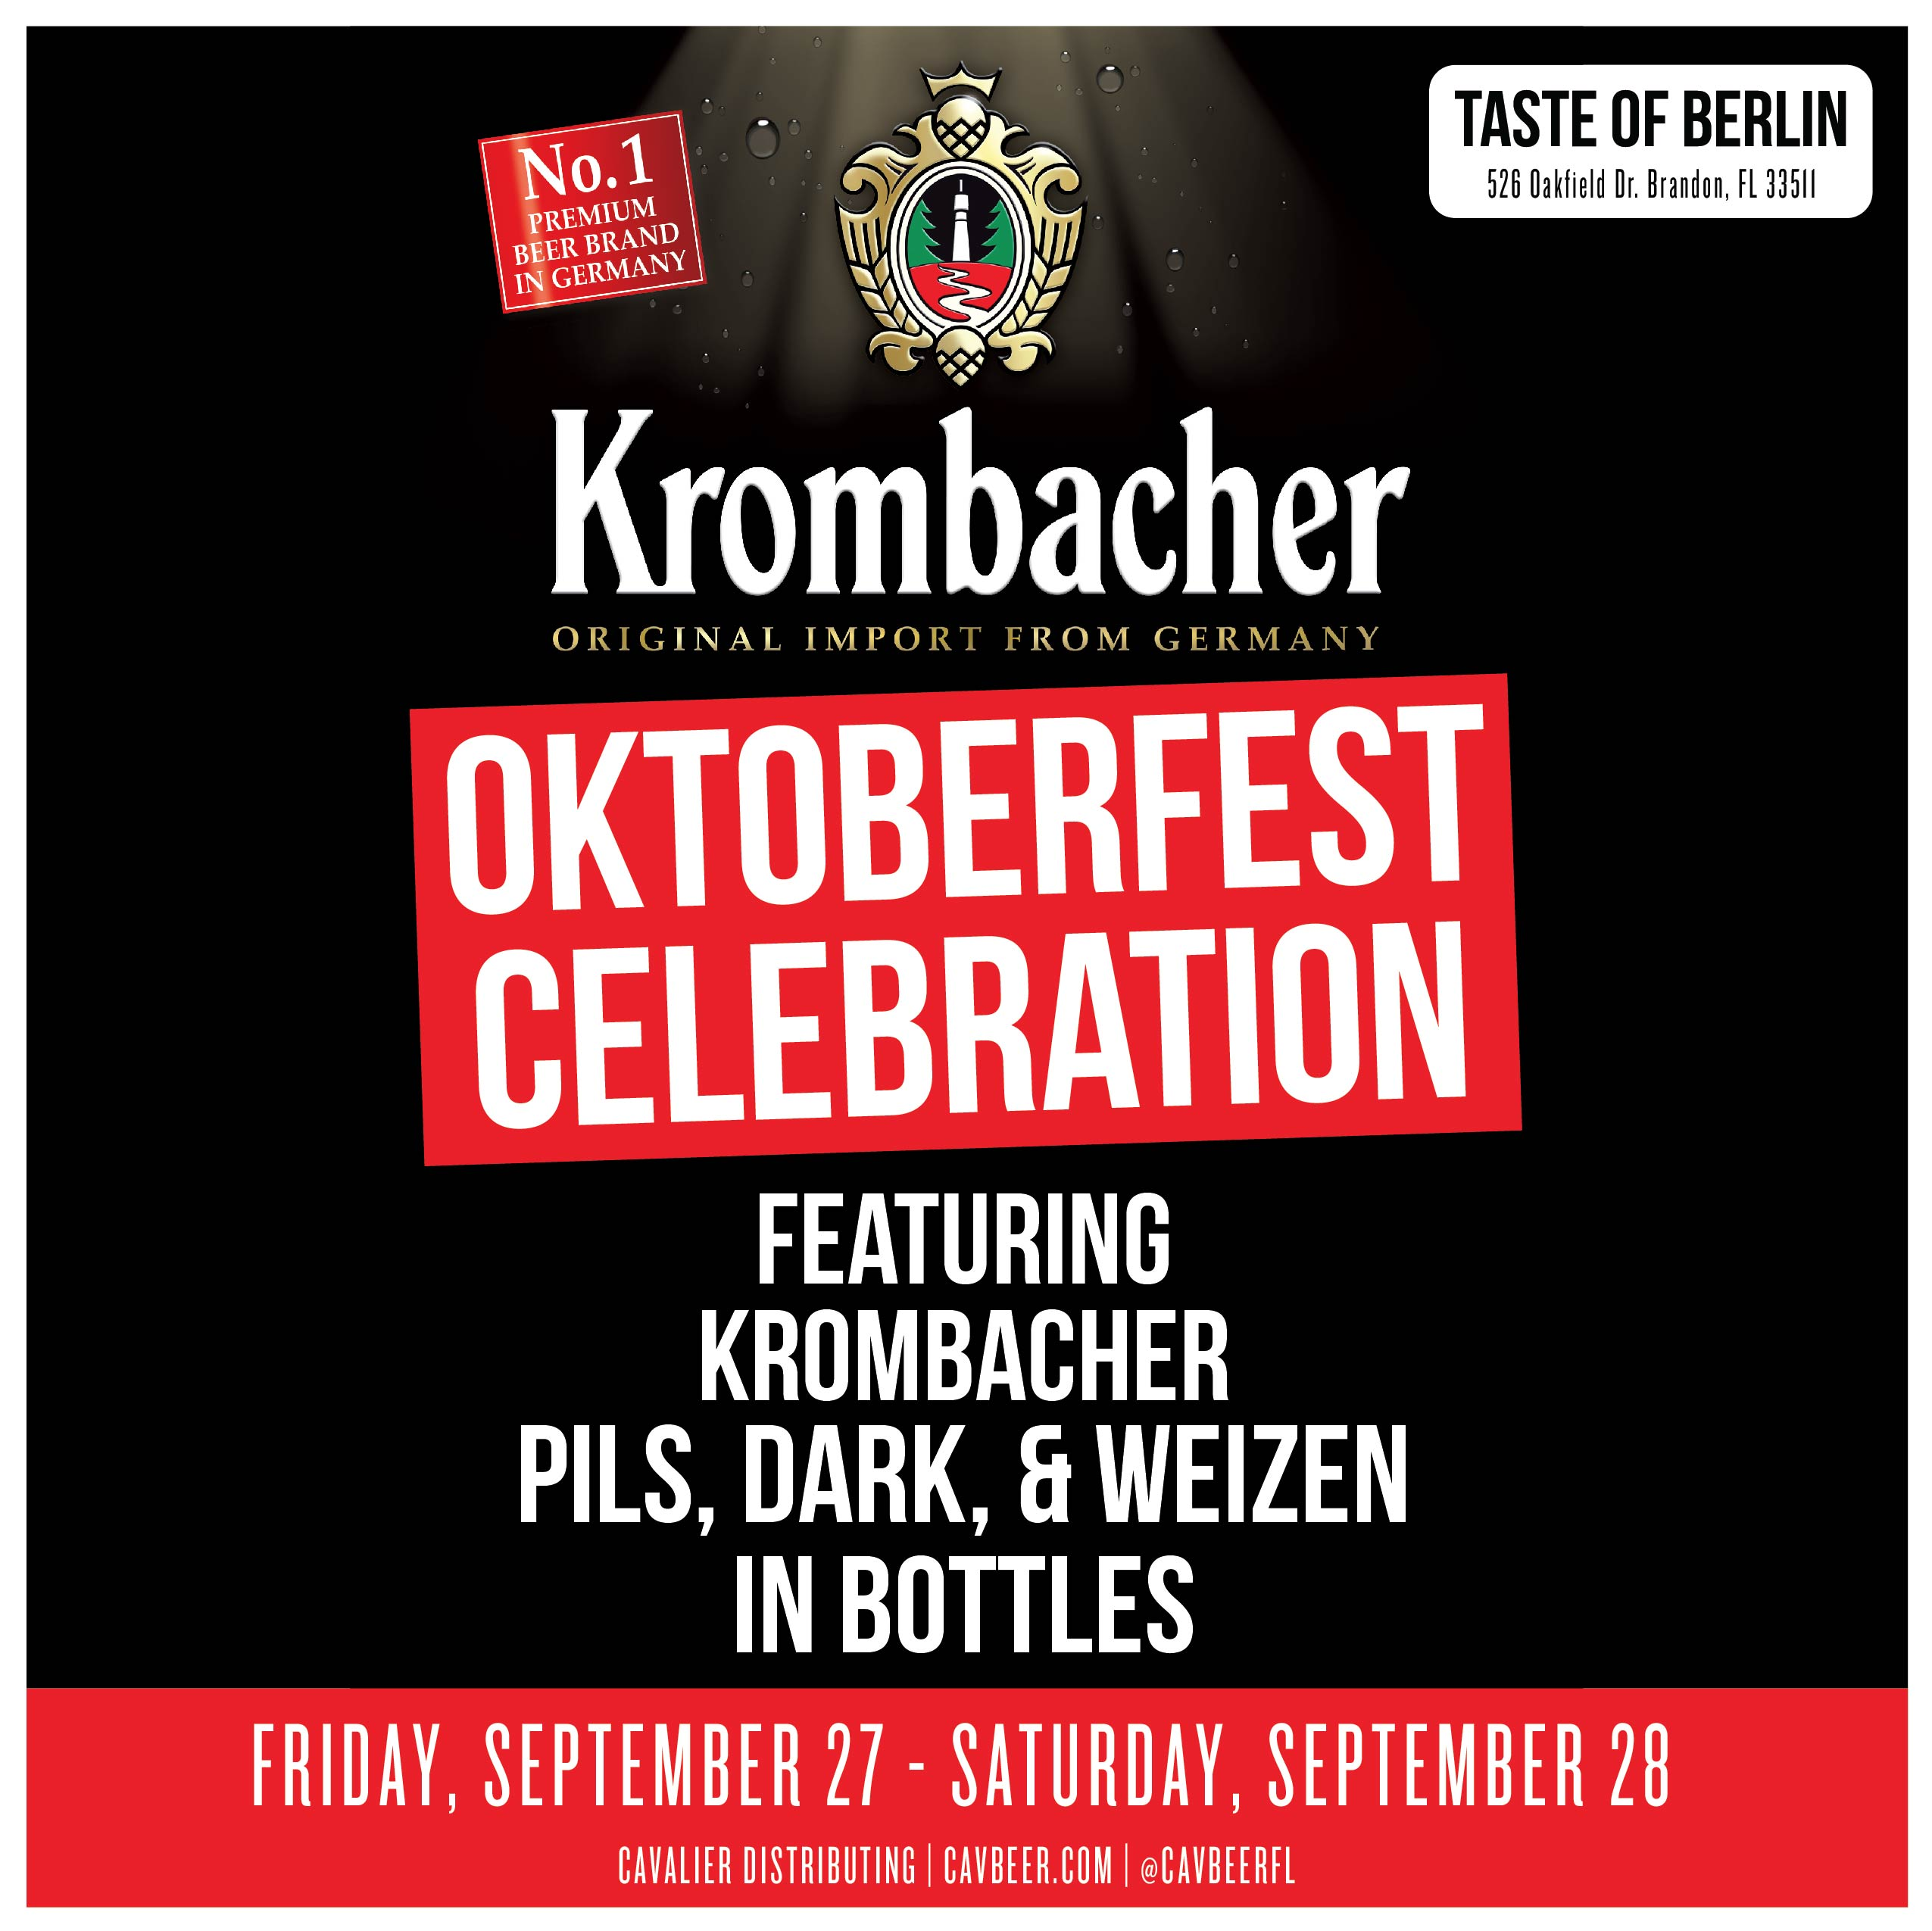 Oktoberfest Celebration @ Taste of Berlin